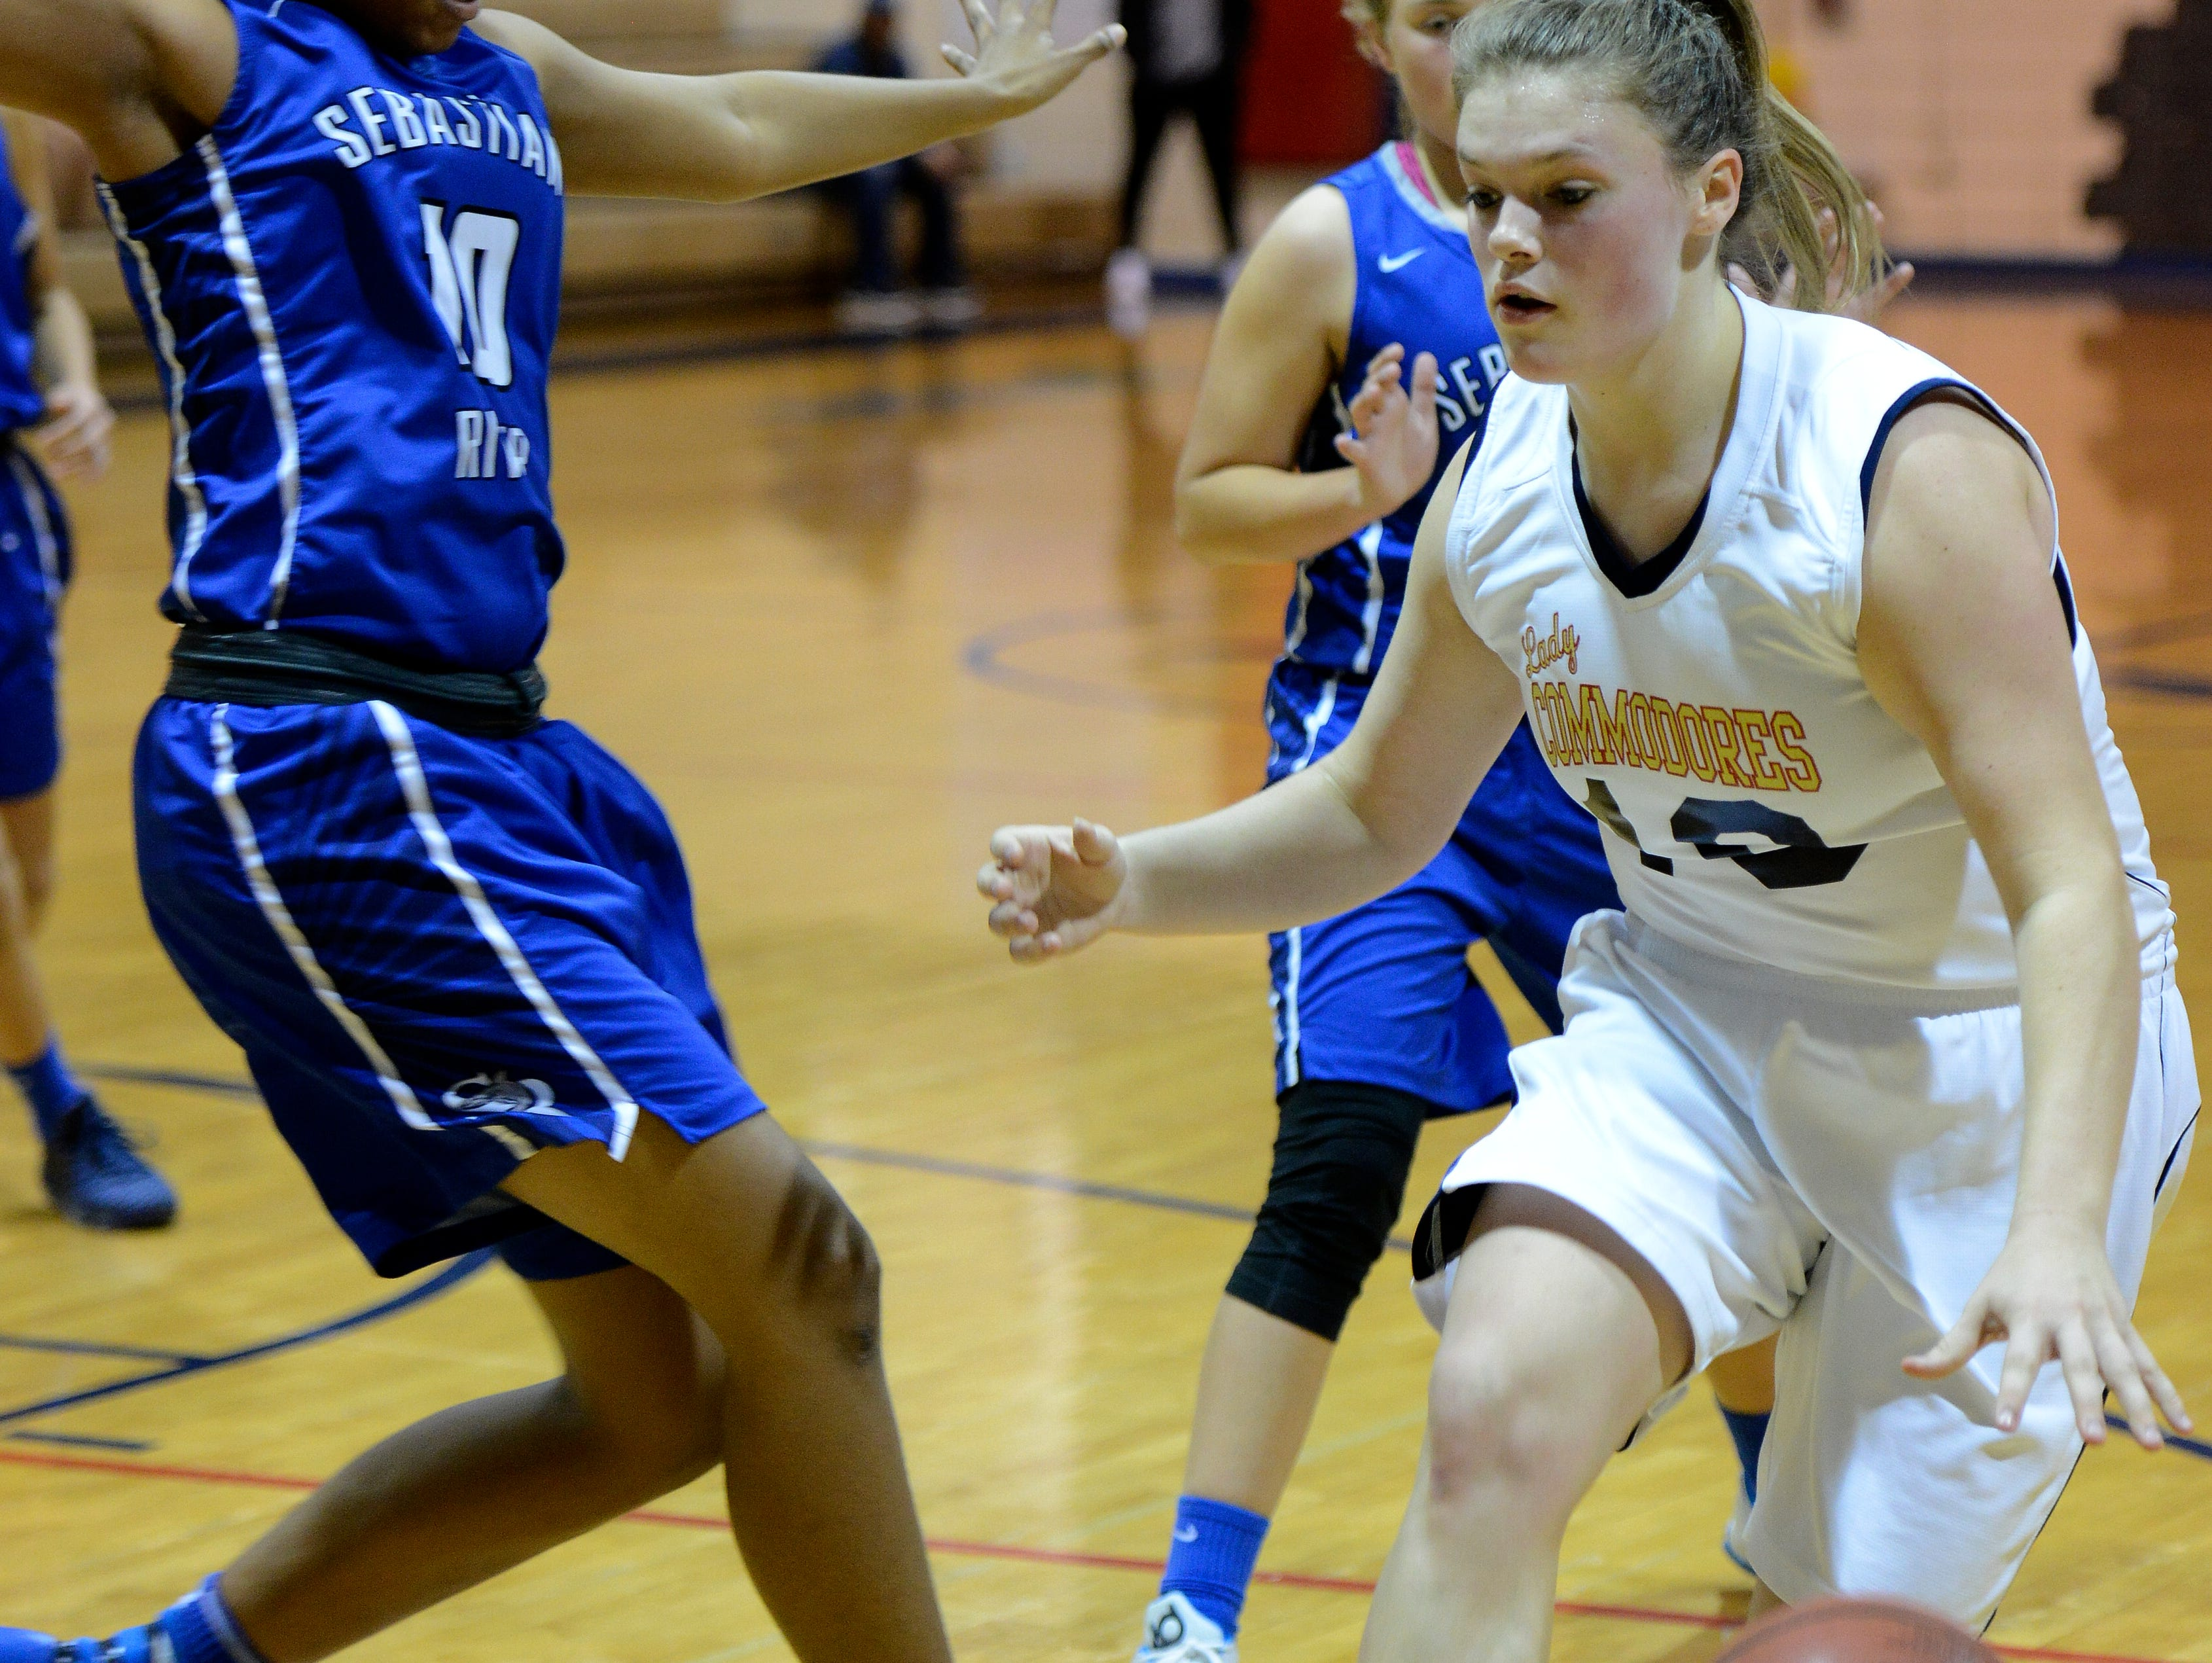 Sammie Streeter of Eau Gallie, pictured during a January game, averaged 18.5 points.